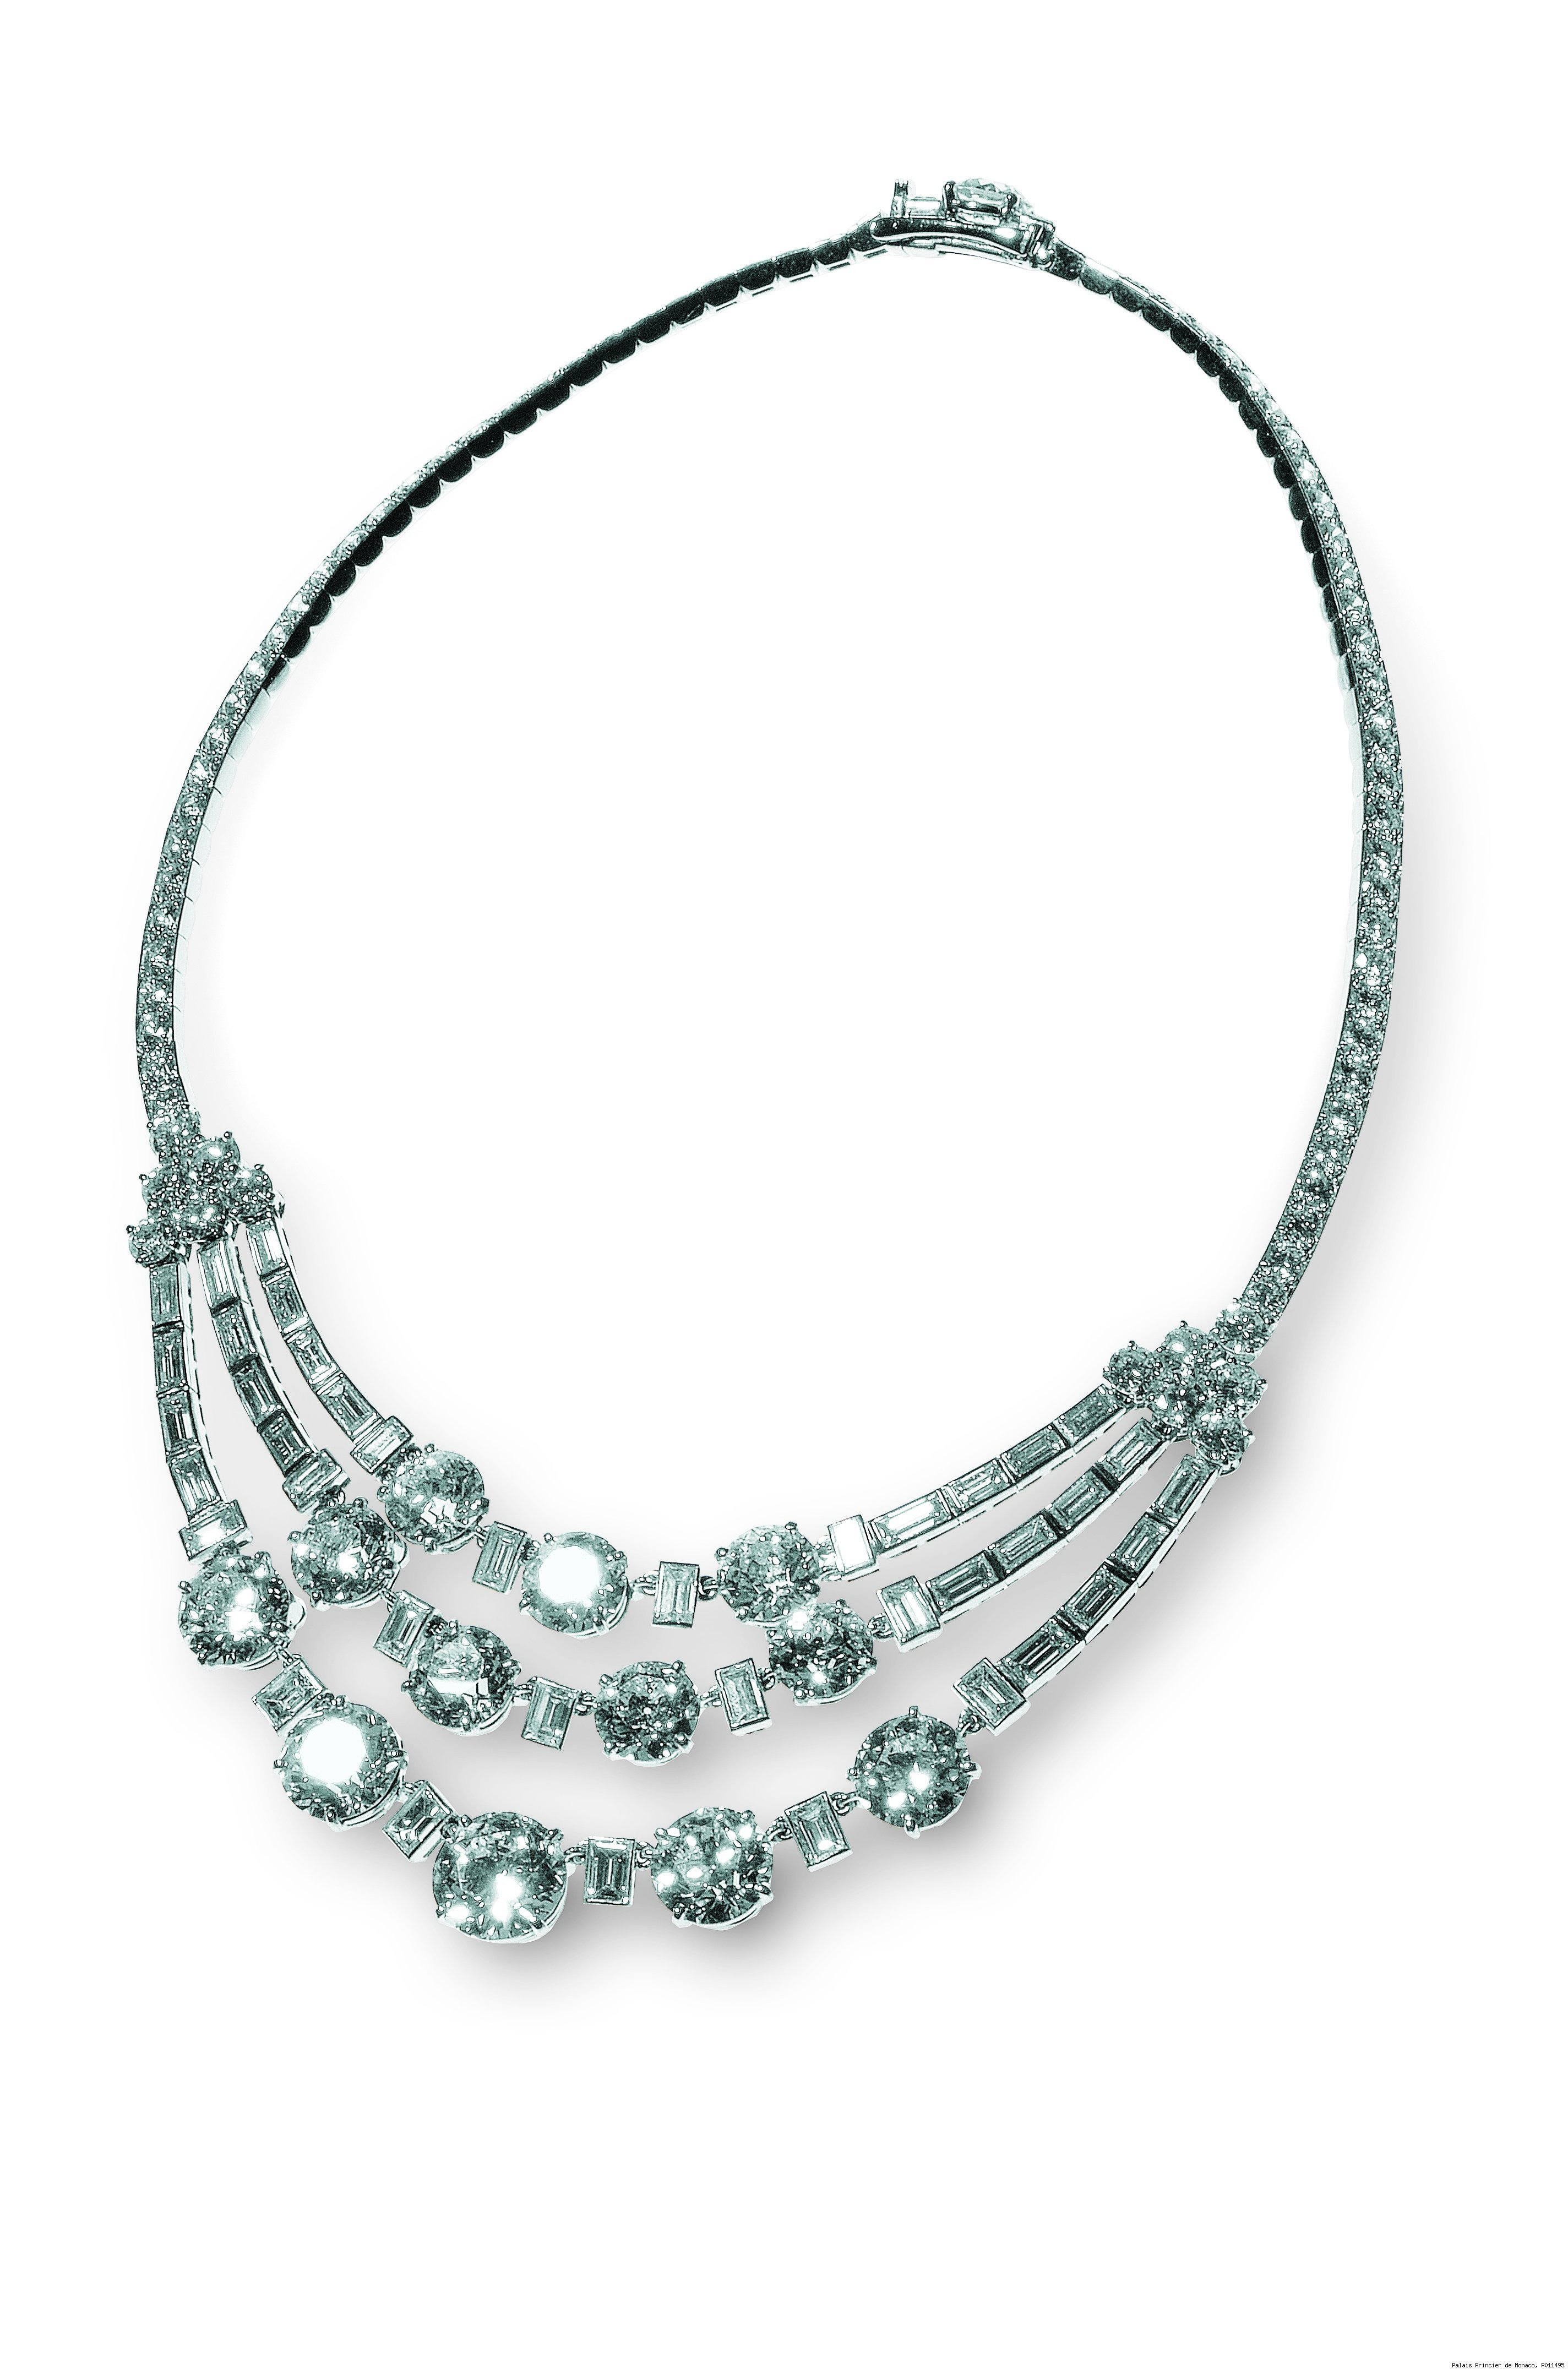 Riviere Diamond Necklace